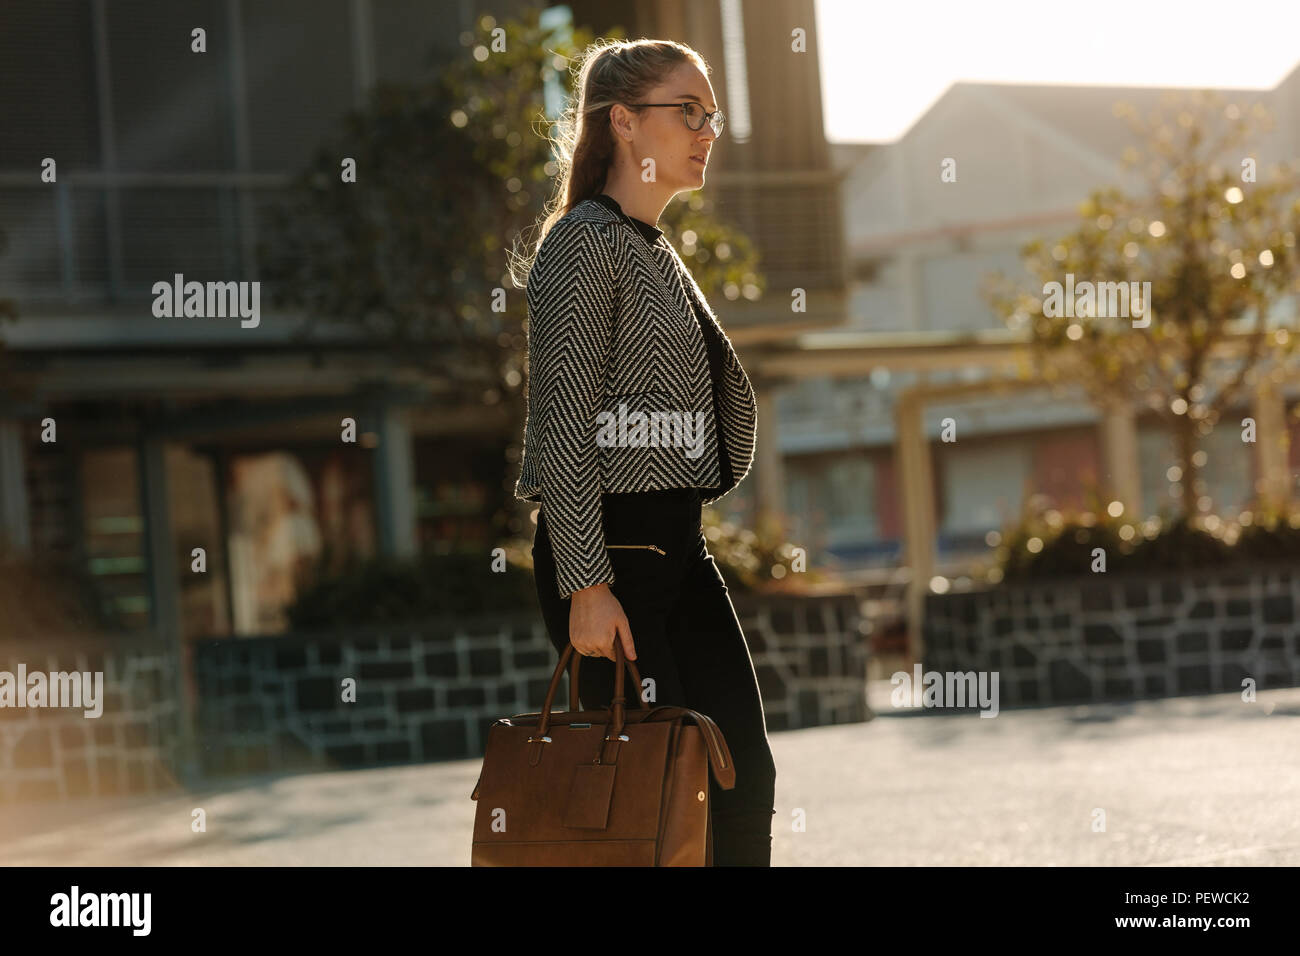 Woman walking on a street in the morning. Businesswoman commuting to office in the morning carrying her bag. - Stock Image